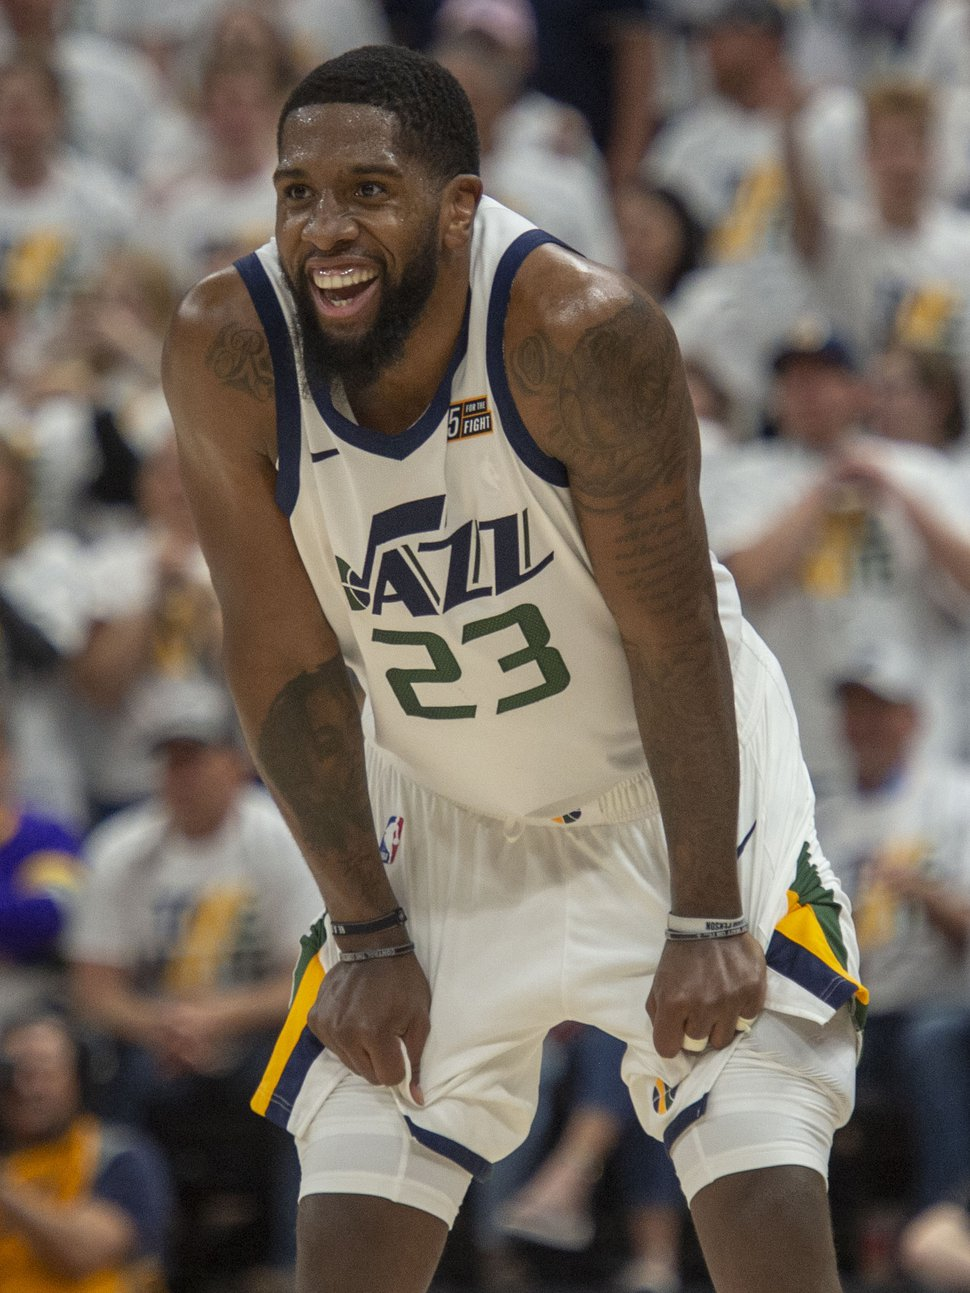 (Rick Egan | The Salt Lake Tribune) Utah Jazz forward Royce O'Neale (23) reacts after being called for a personal foul after stripping the ball fromHouston Rockets guard James Harden (13), as the Jazz defeated the Rockets 107-91, in game 4 of the NBA Playoffs, in Salt Lake City, Monday, April 22, 2019.